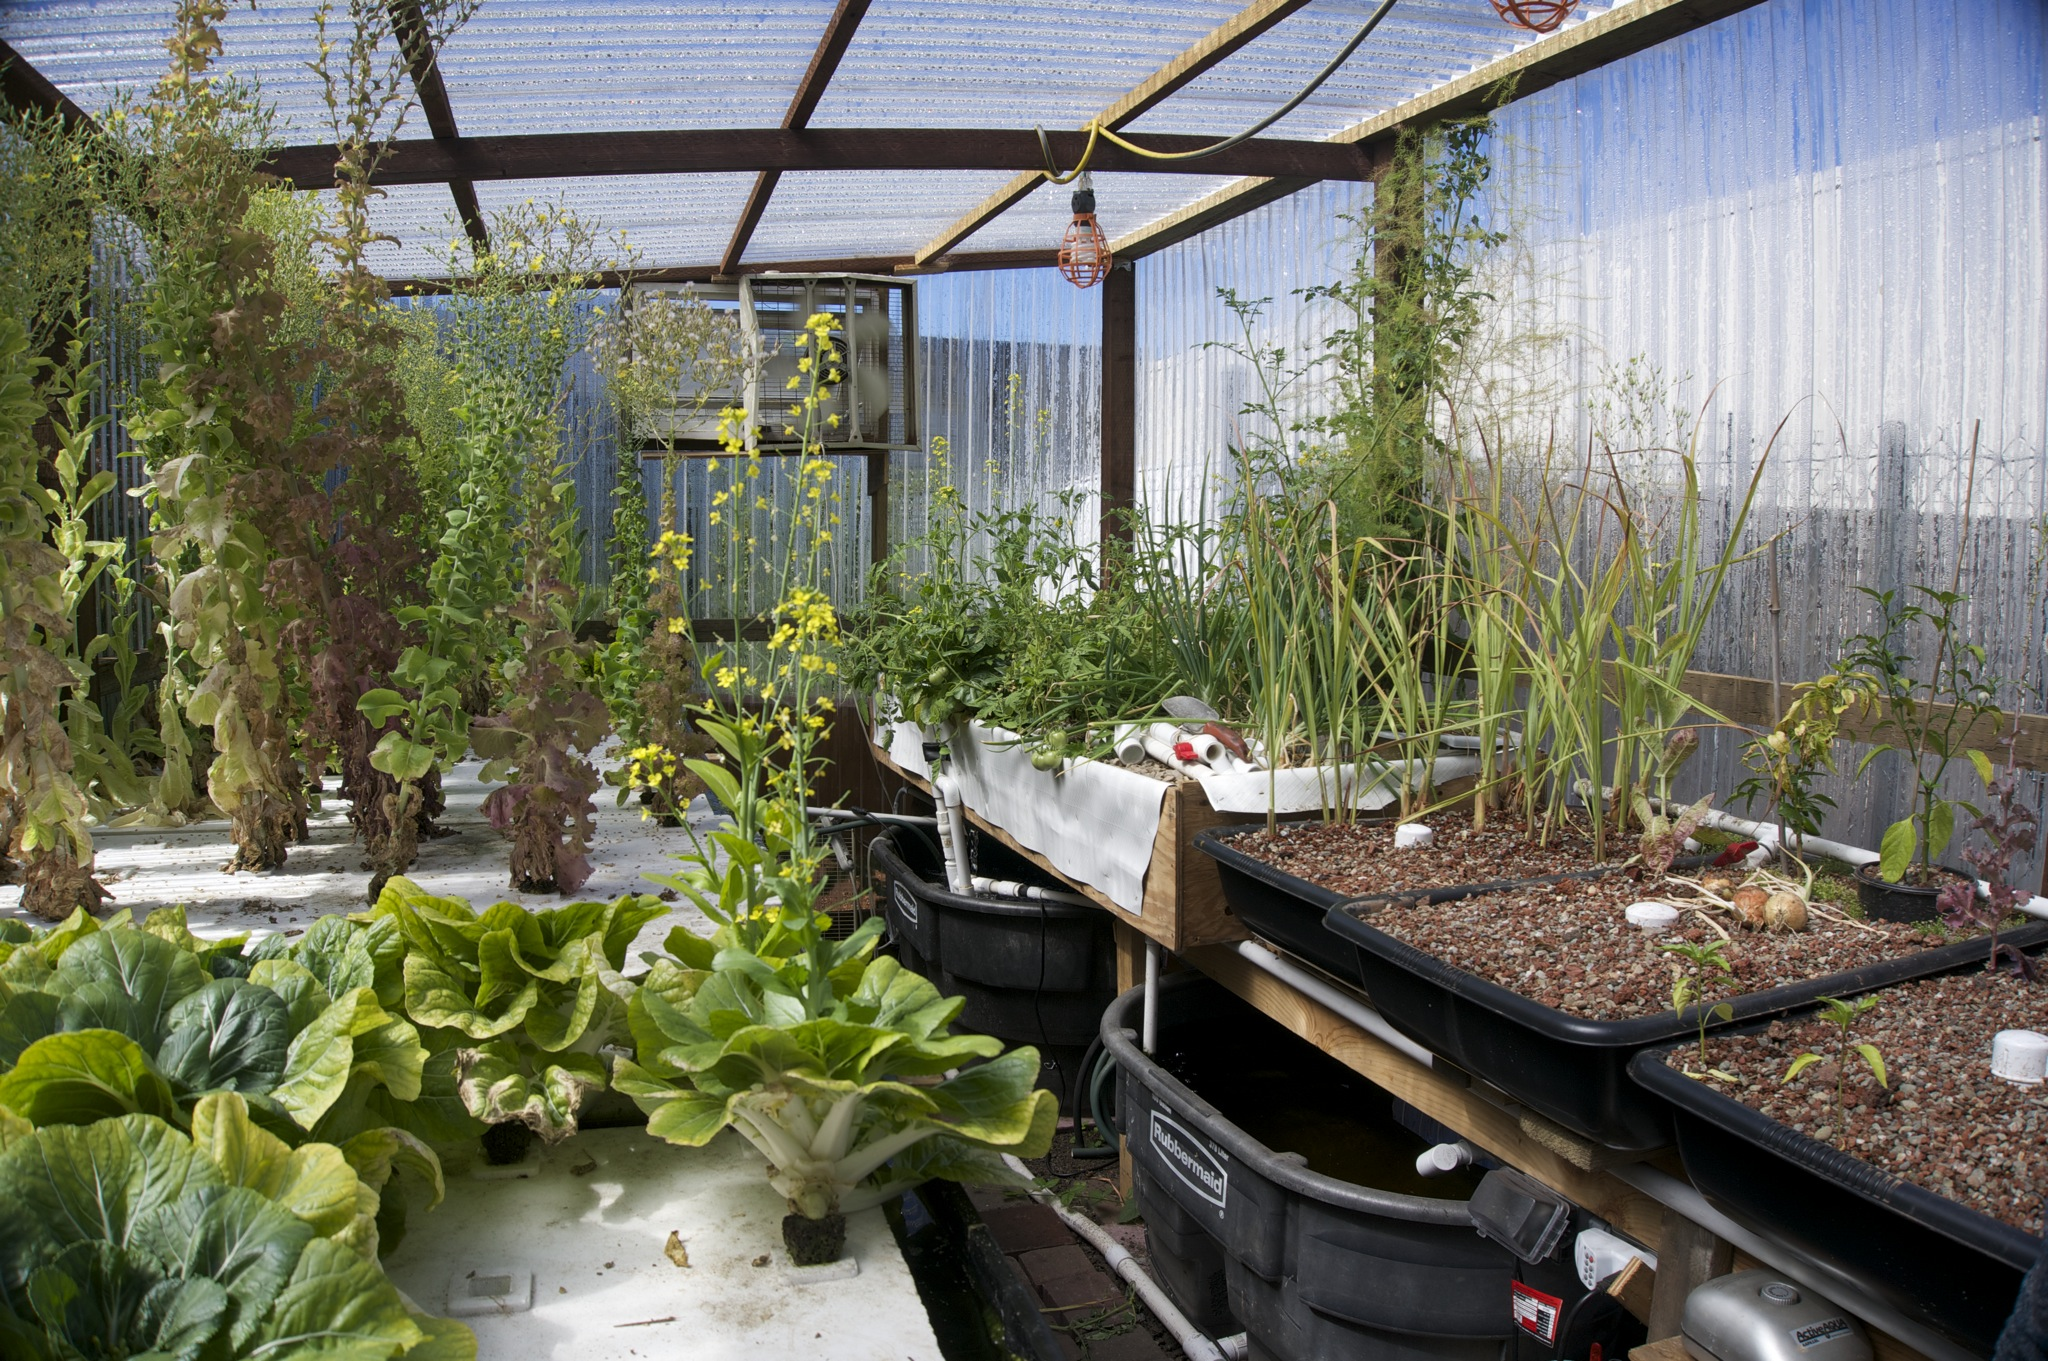 Greenhouse with aquaponics system